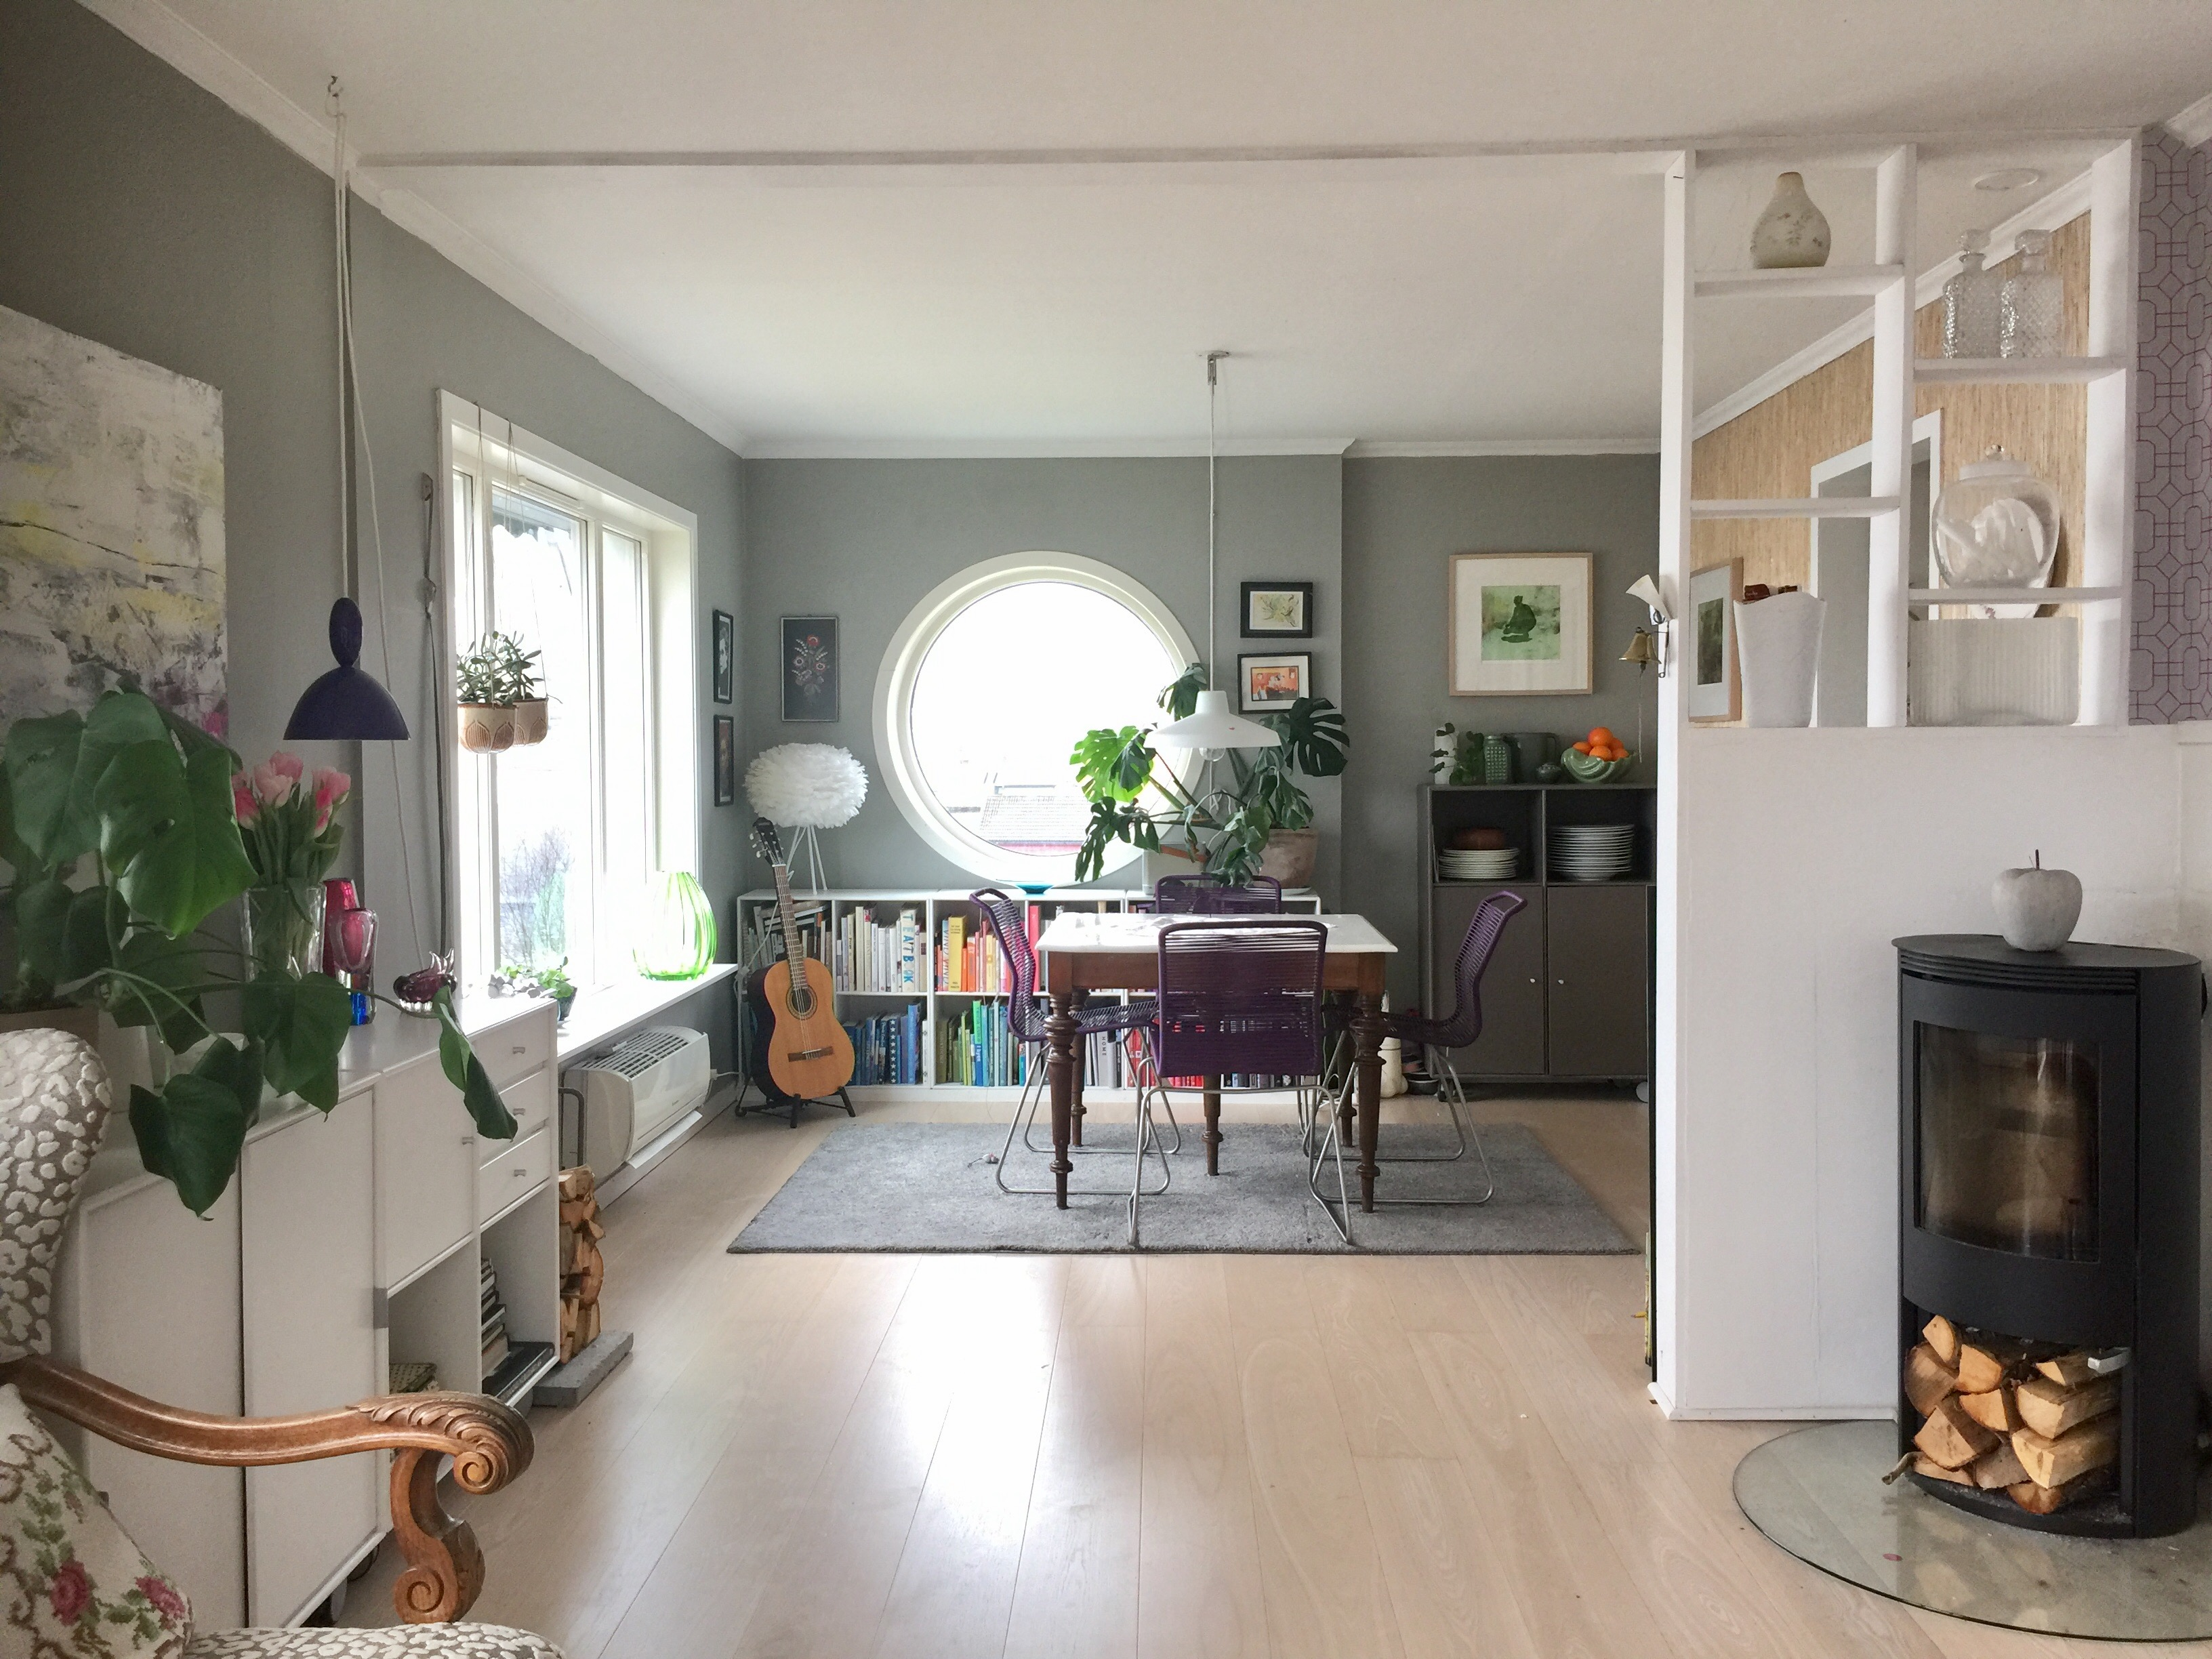 Rosendal, Signe oppussing, Signe Schineller, Vita Copenhagen Vita Eos, Eos lampe, lampe strutsefjær, Resignert, interiorstyling, interiorstyling, rundt vindu, round window, Montana, Pantone One, Tivoli Chair, Bohus, Fretex, Tikkurila, Beckers Maling, Bøker, innred med bøker, NOrthern Lighting, NOrdan vinduer,